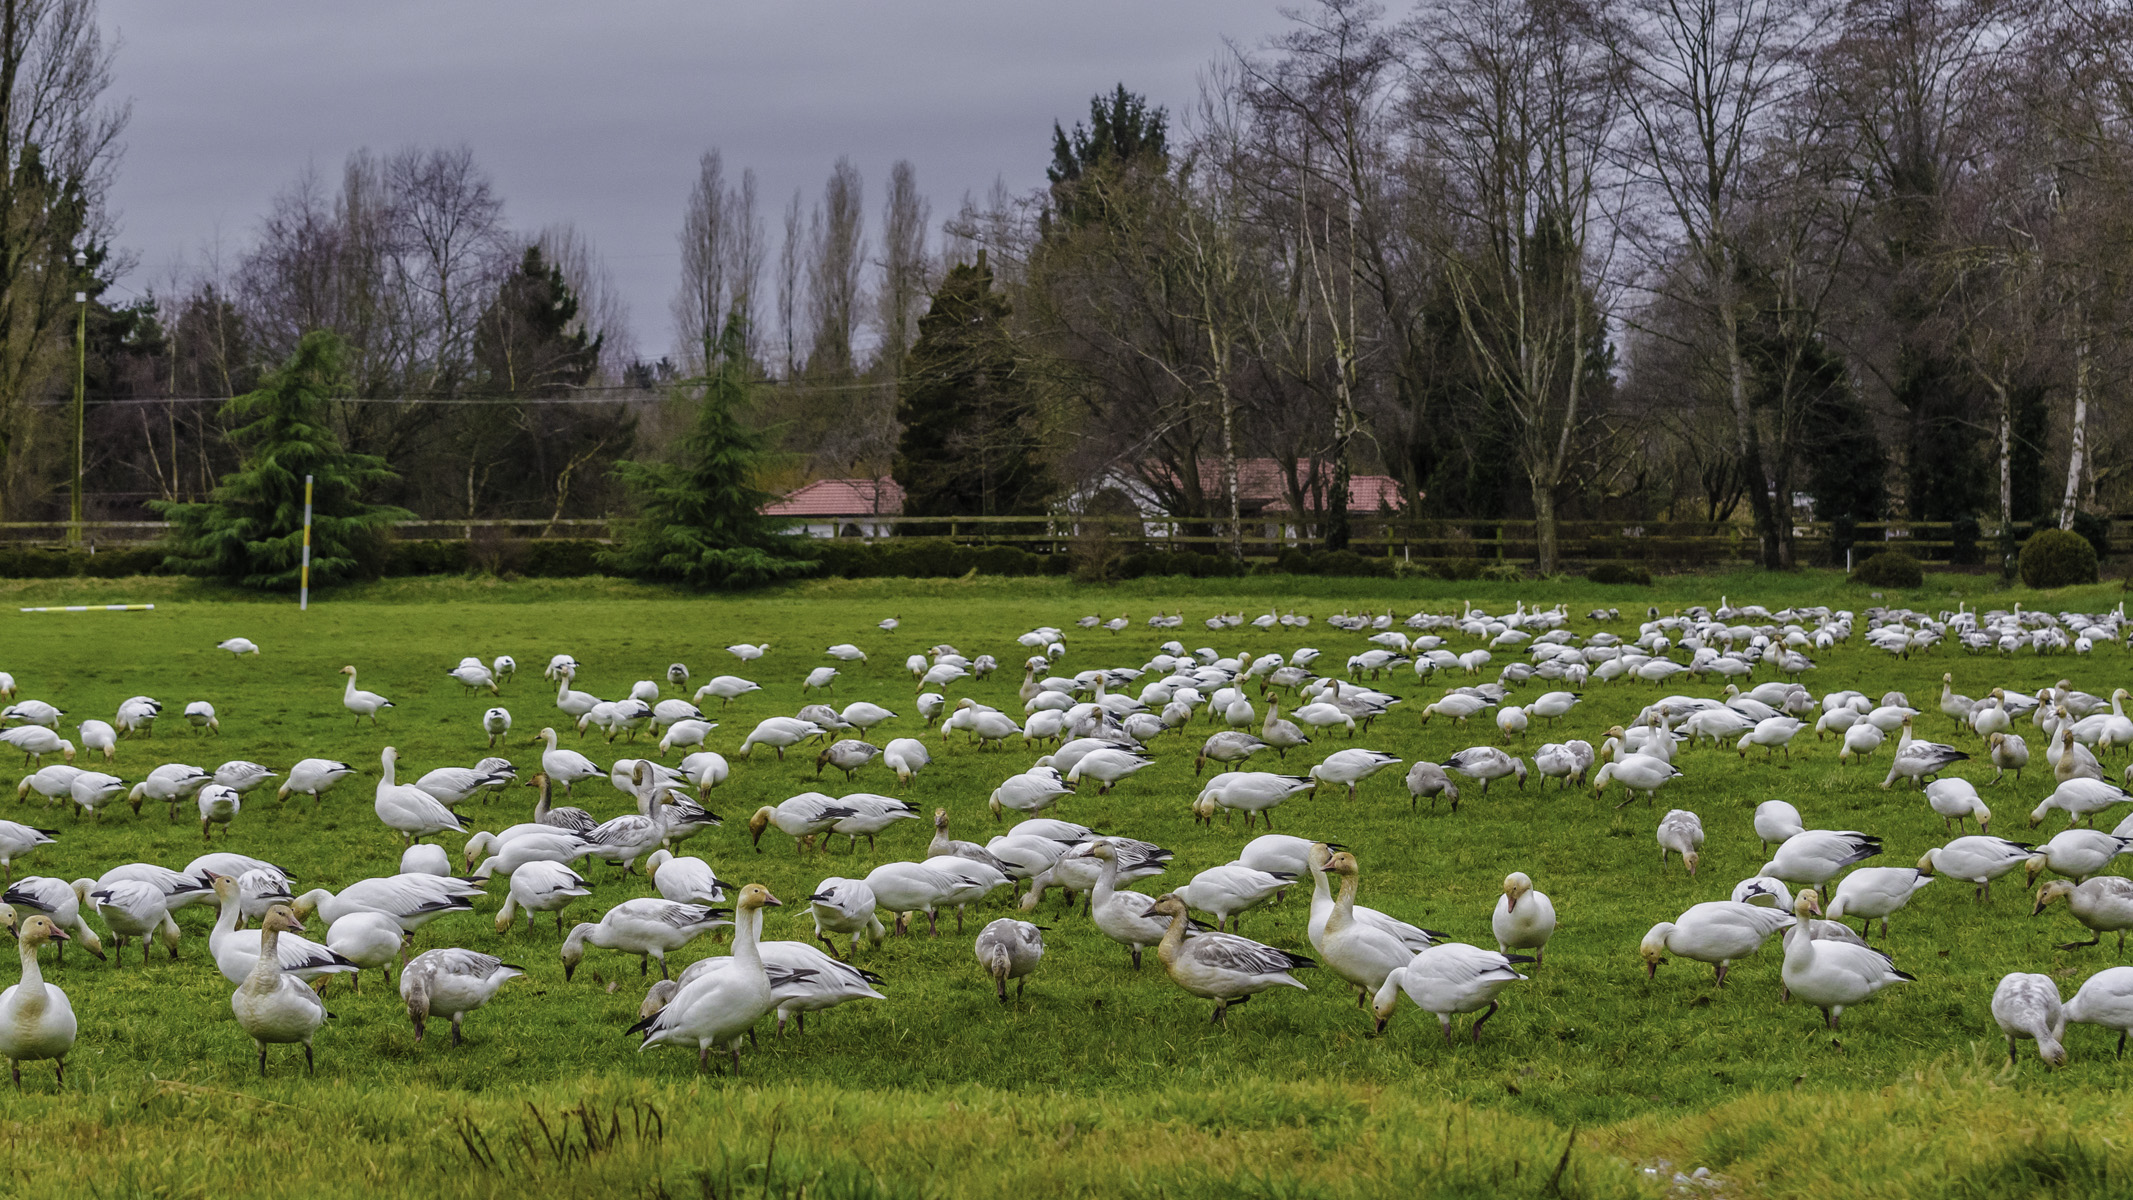 Snow geese spending a few days on the polo field